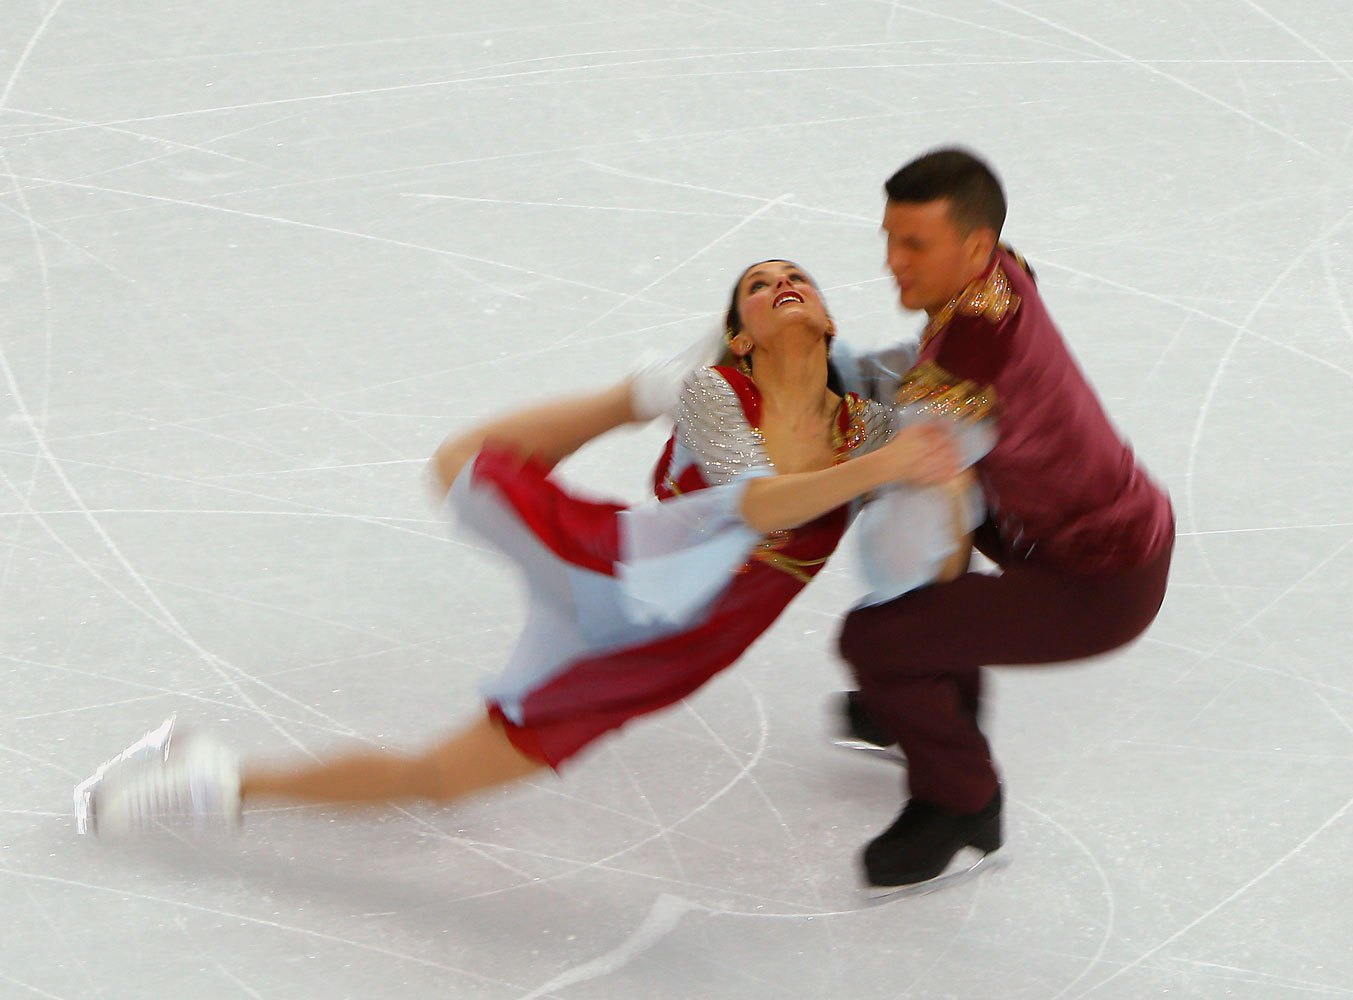 Charlene Guignard, left, and Marco Fabbri of Italy compete during the figure skating team ice dance free dance, Feb. 9, 2014.